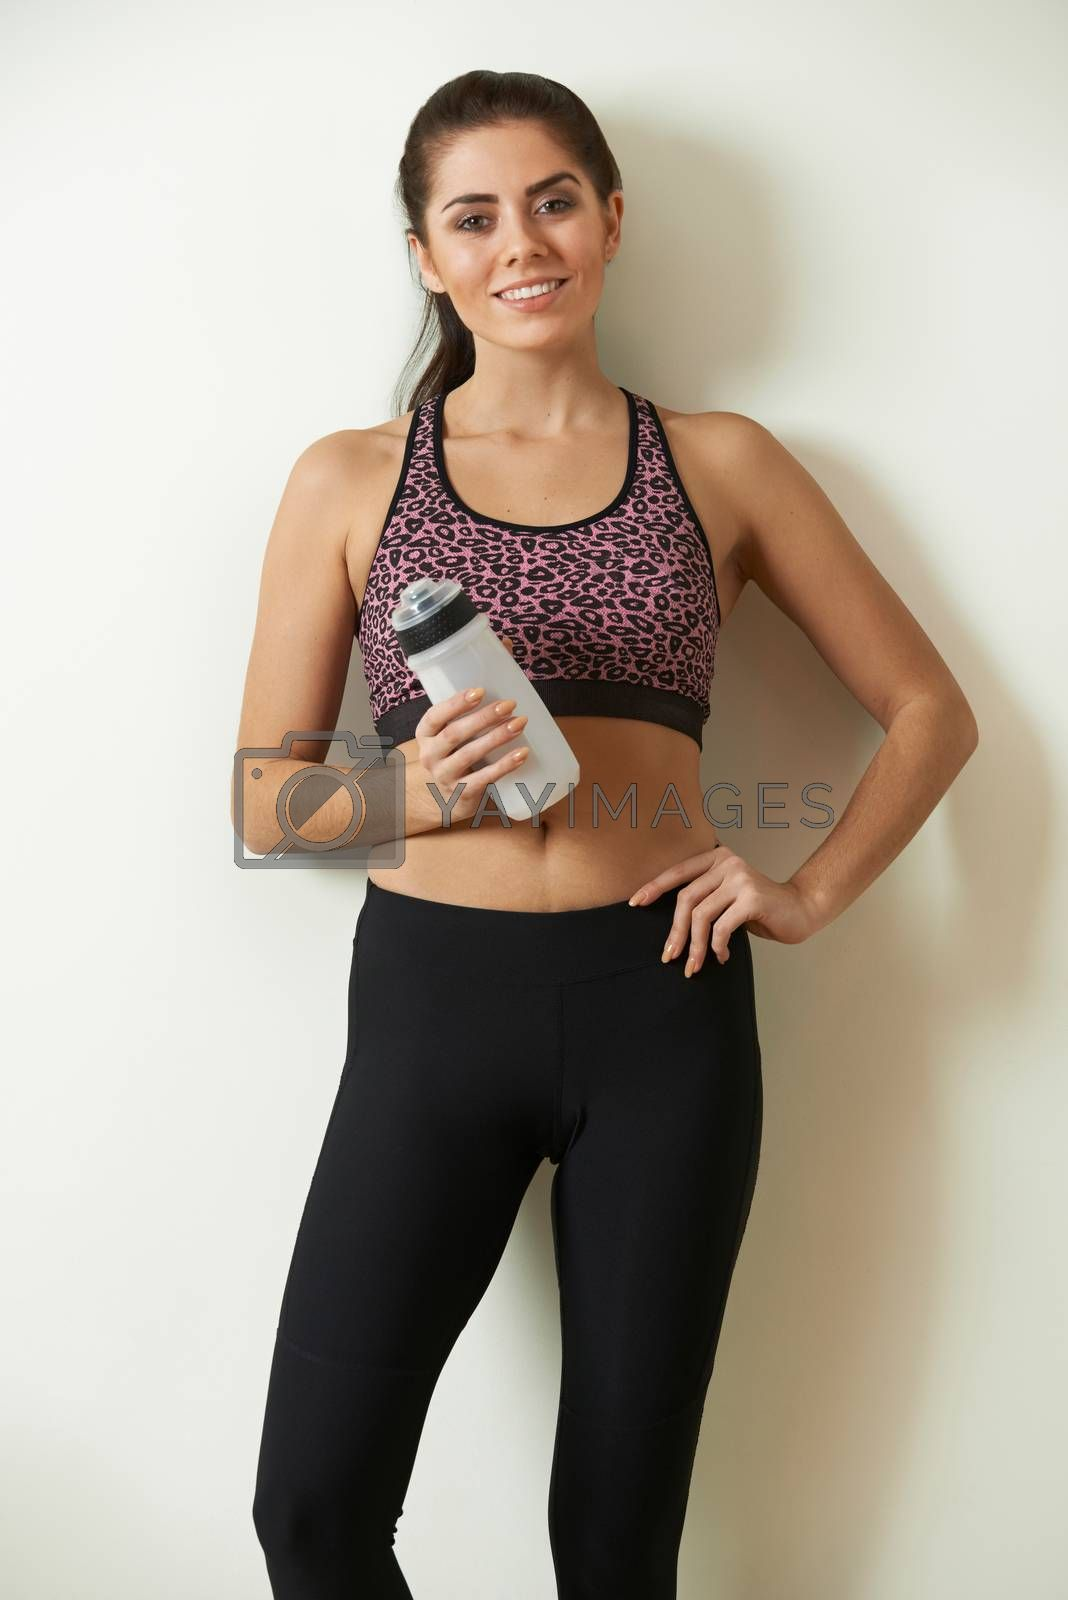 Woman Holding Water Bottle Taking Break During Exercise